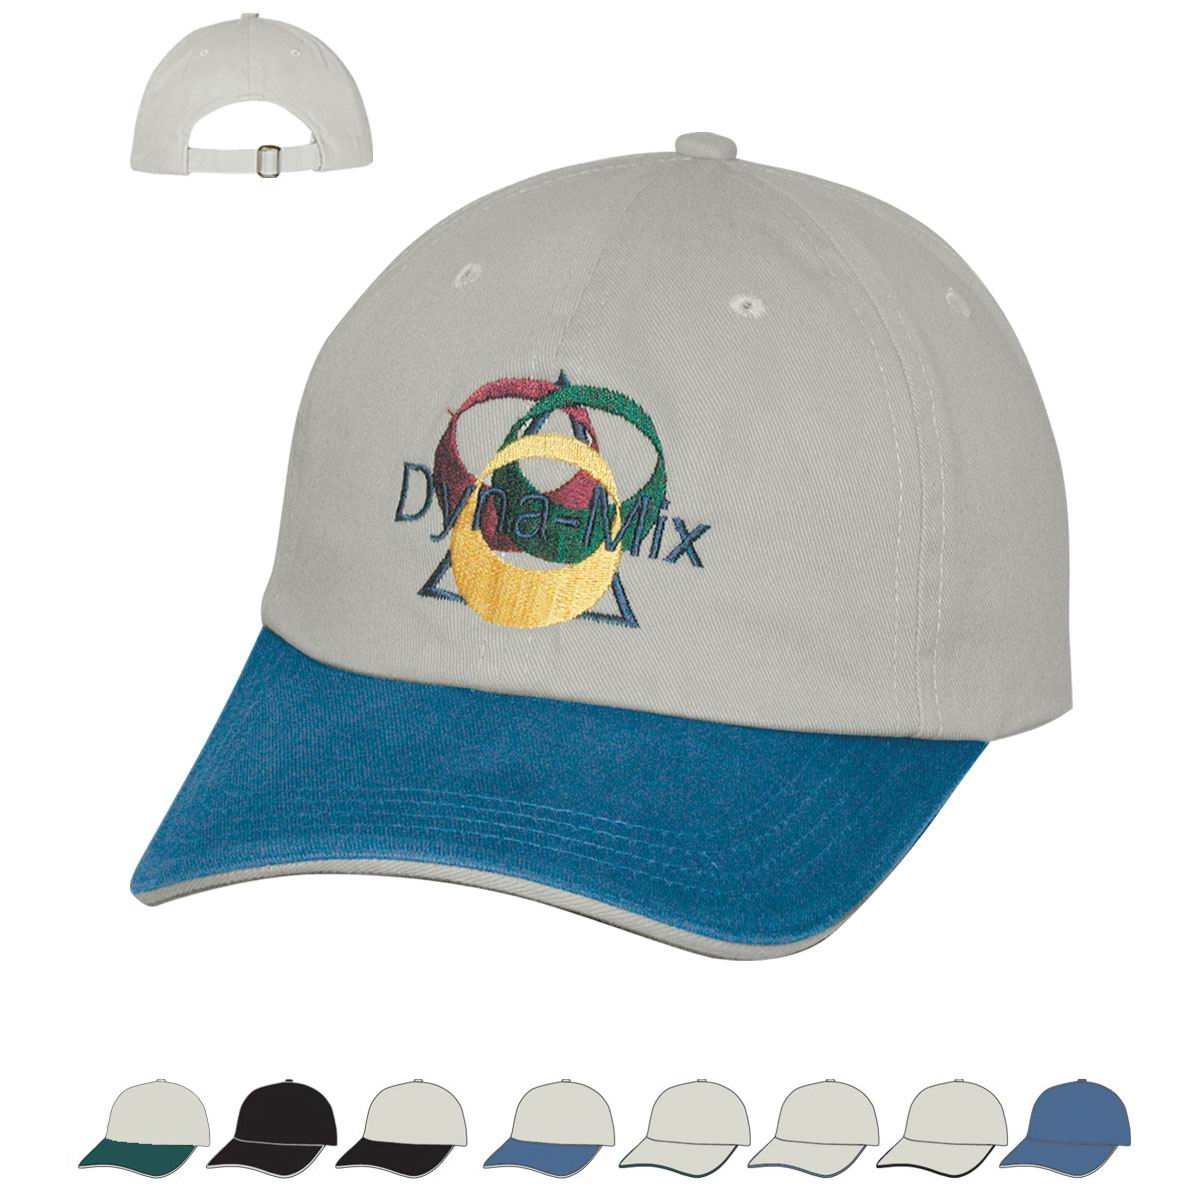 6 panel cotton chino sandwich cap